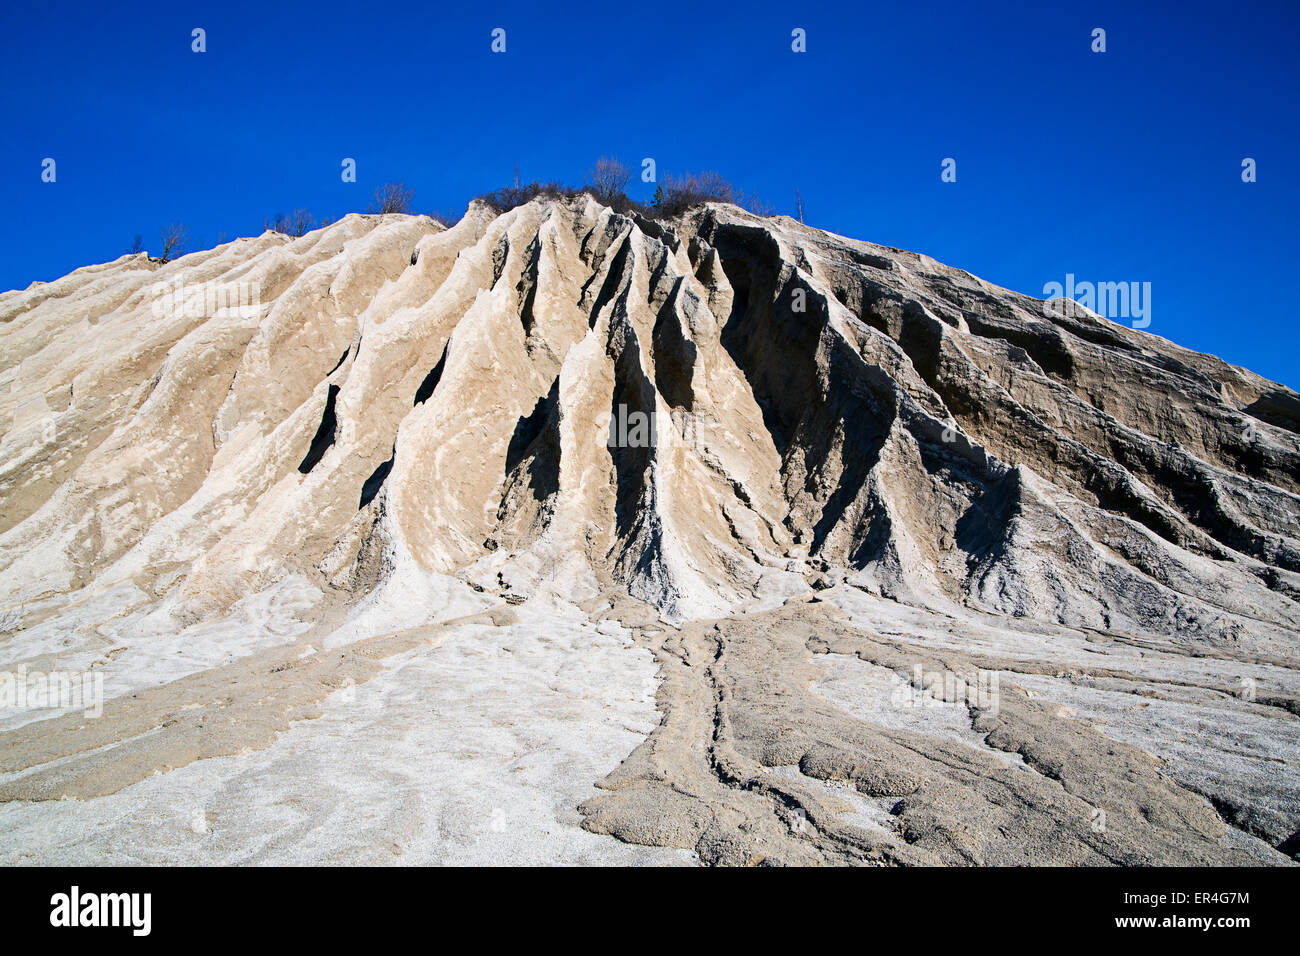 A big and grey mountain looks powerful - Stock Image